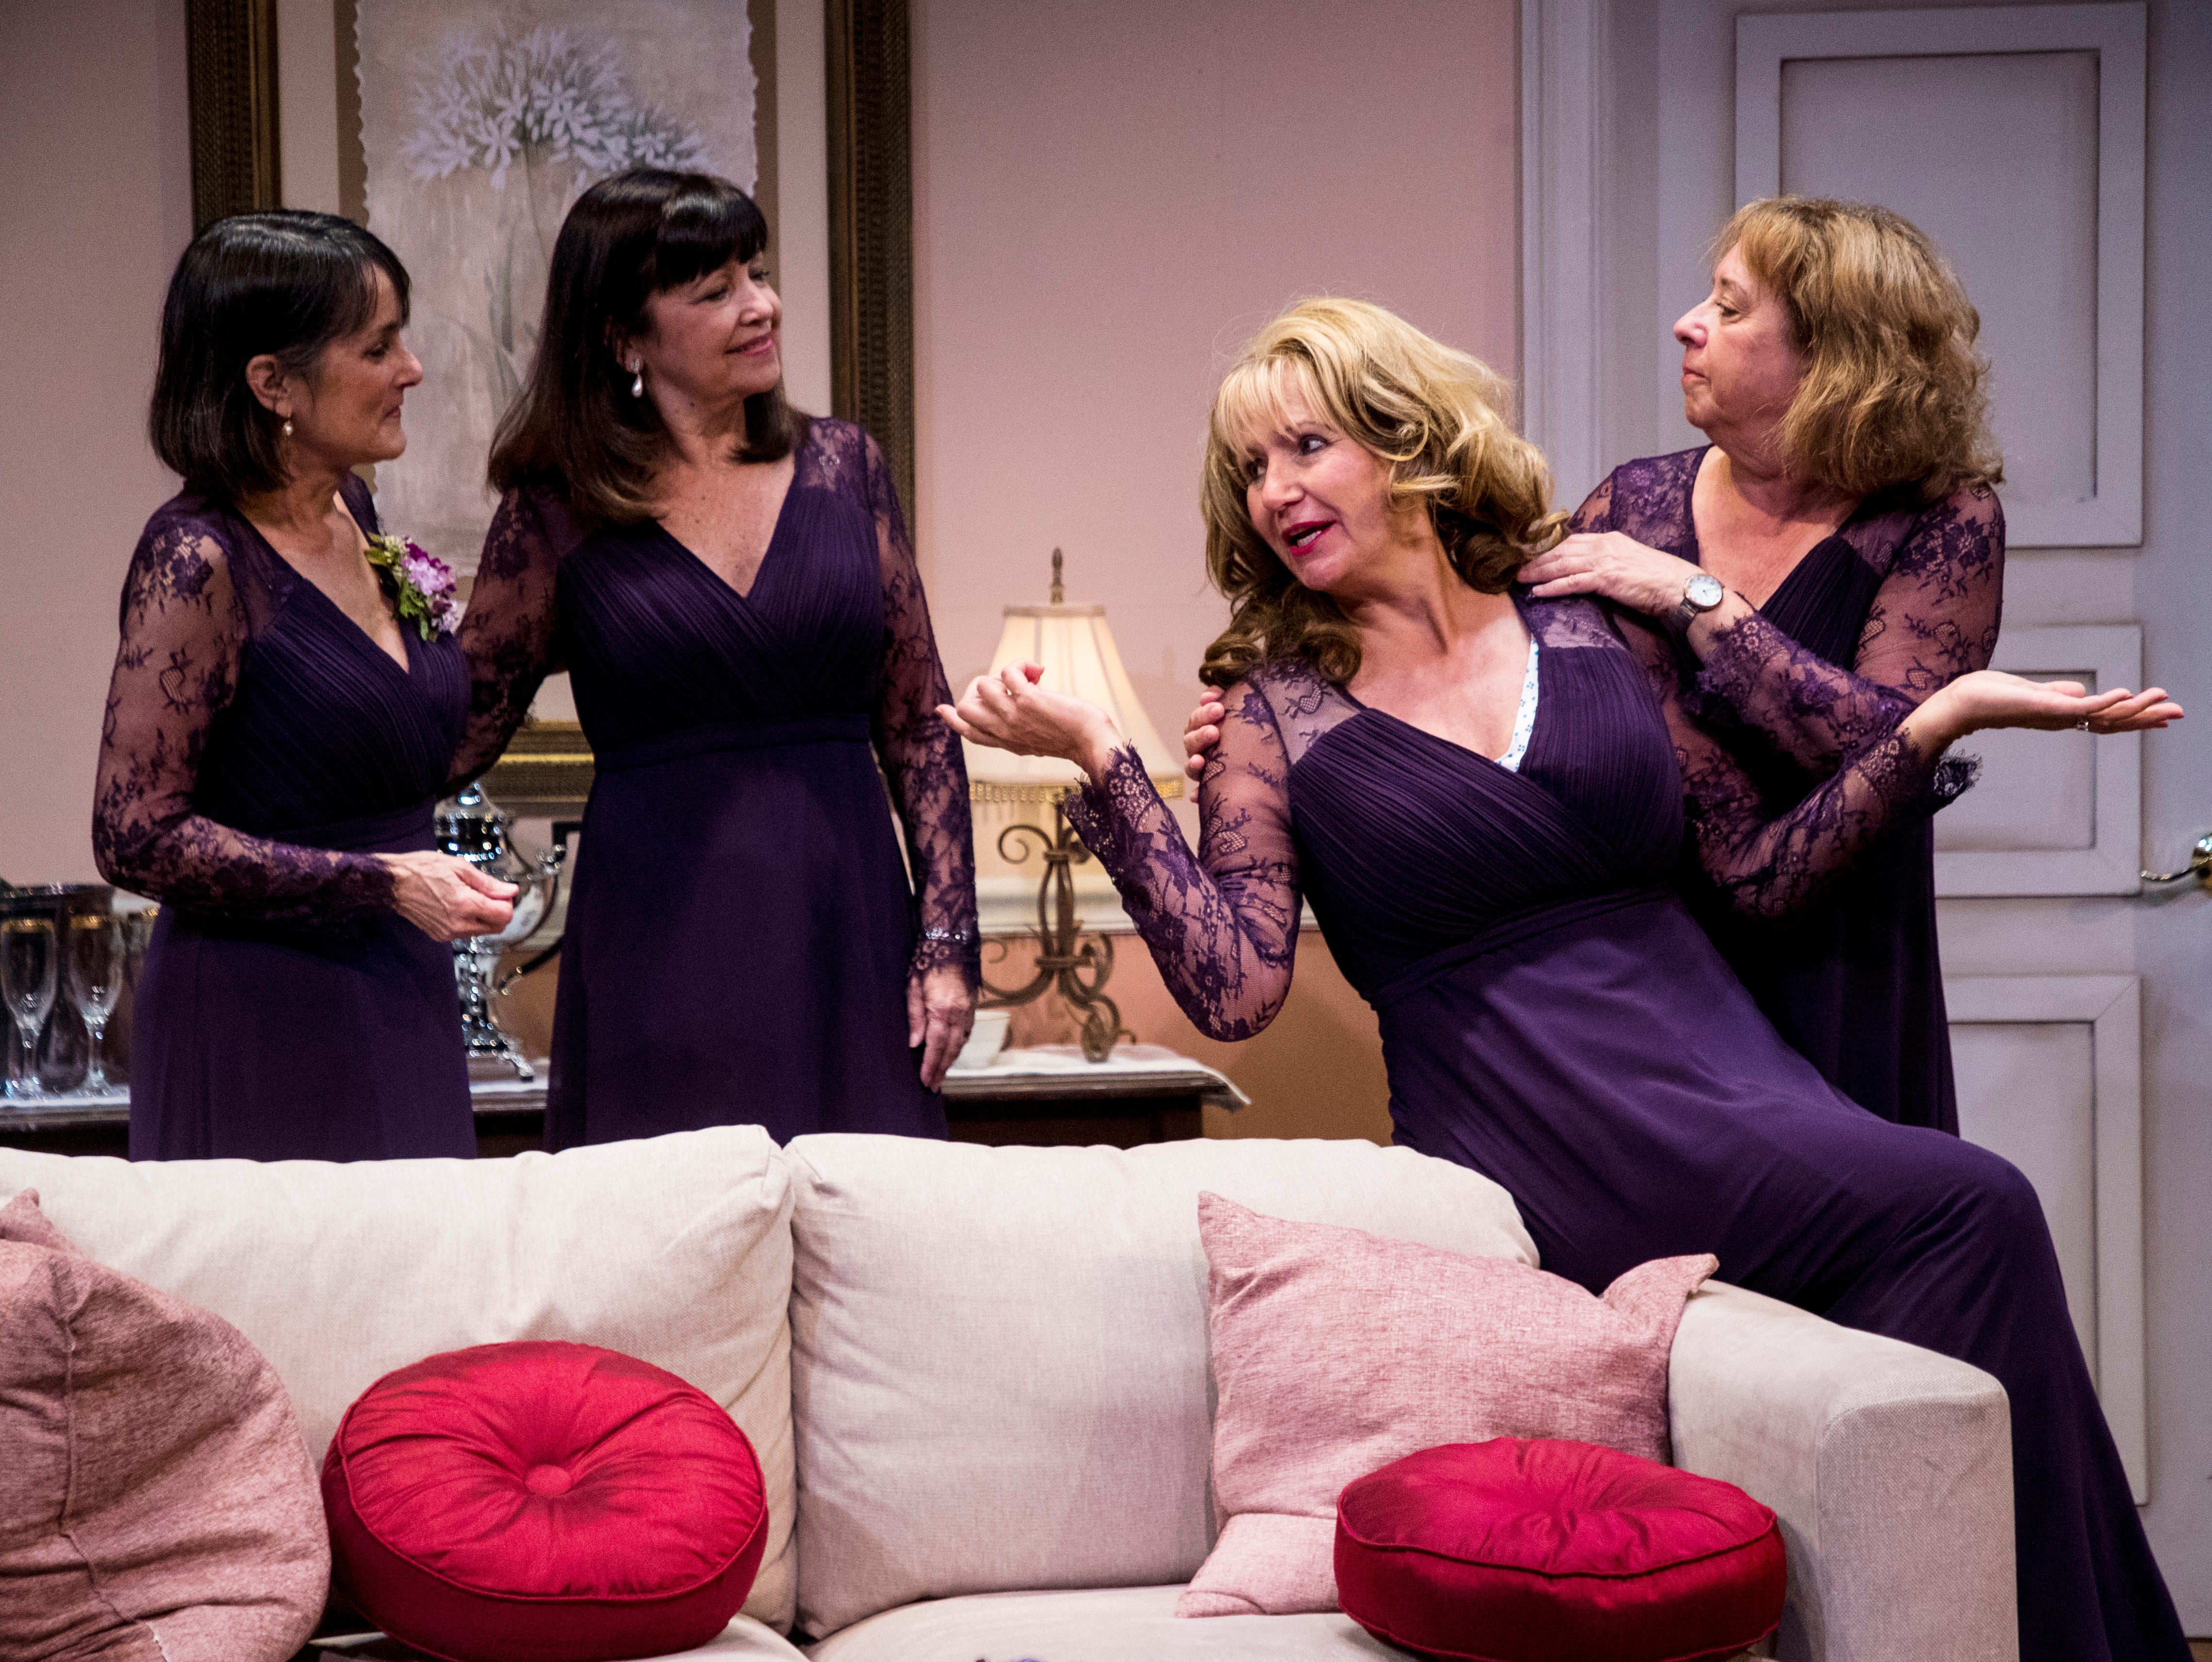 From left, Judy Scribner playing Libby Ruth, Jo Atkinson playing Deedra, Pamela Austin playing Monette and Linda Mizeur playing Charlie act out a scene during a dress rehearsel in Always a Bridesmaid. It is playing at the Tobye Theater at Sugden Community Theater on 5th Ave. in Naples from March 27-April 20.